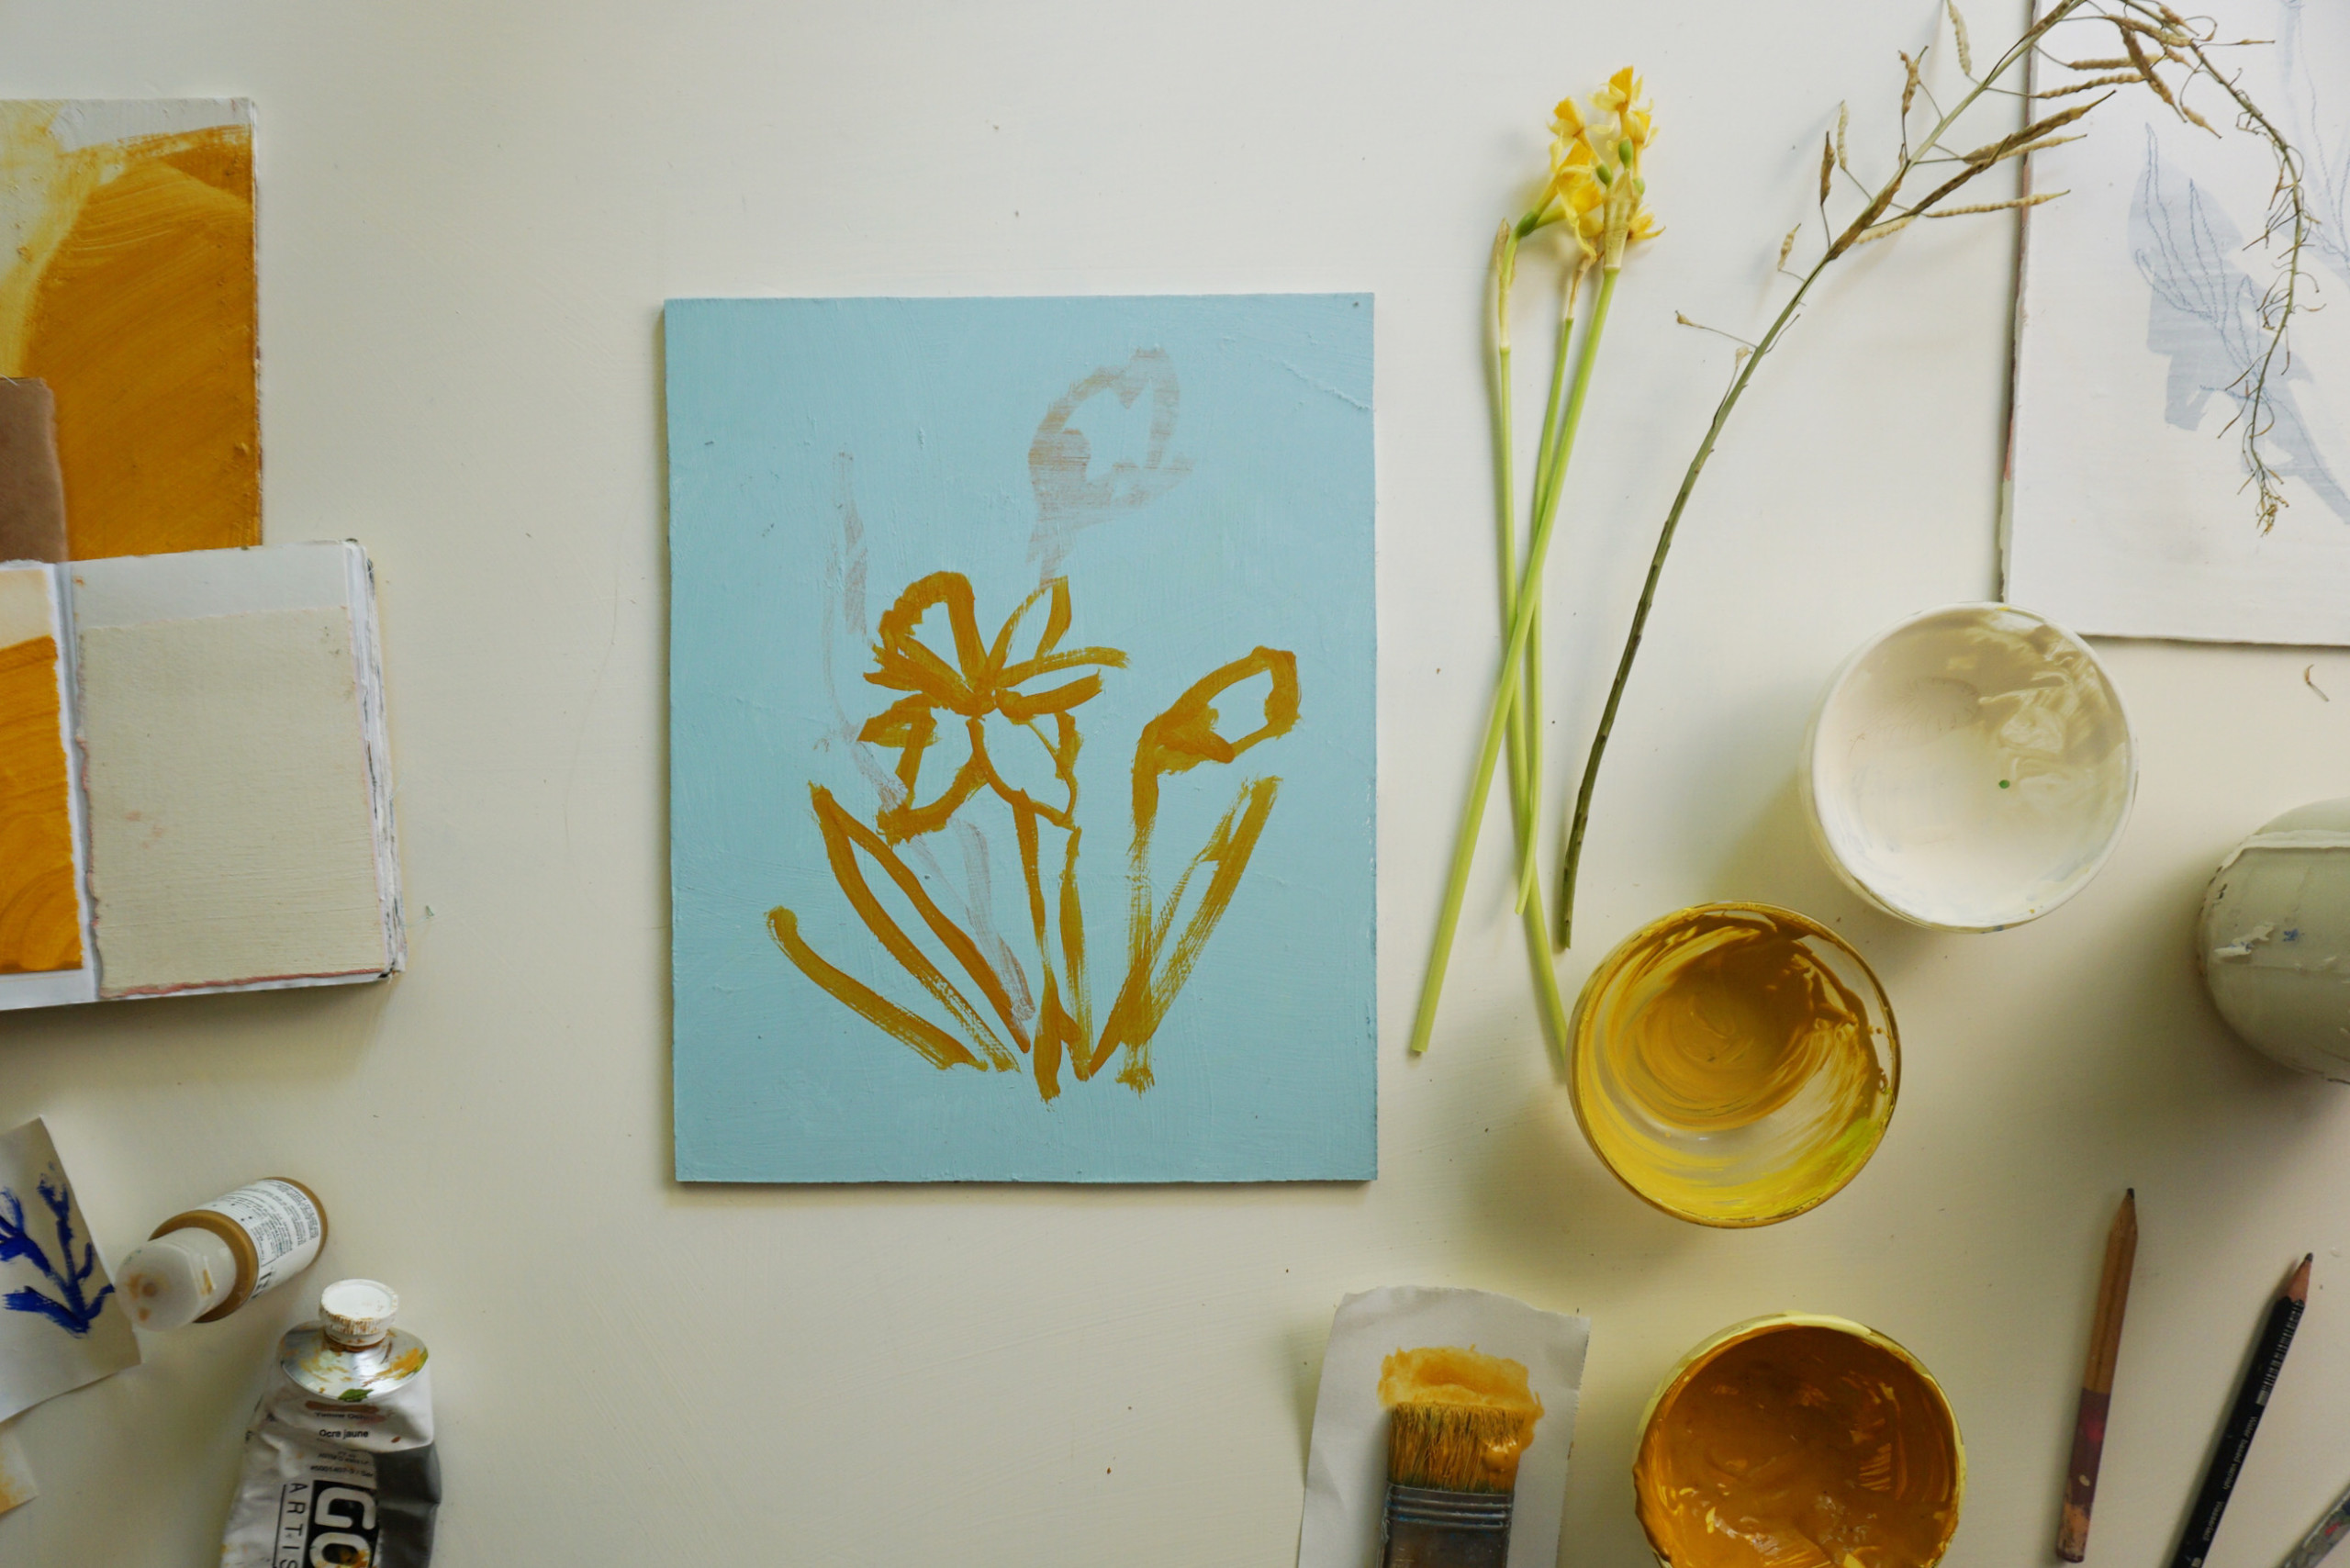 A styled shot of Rachel Smith's Daffodil I print in progress with paint pots and papers around it.